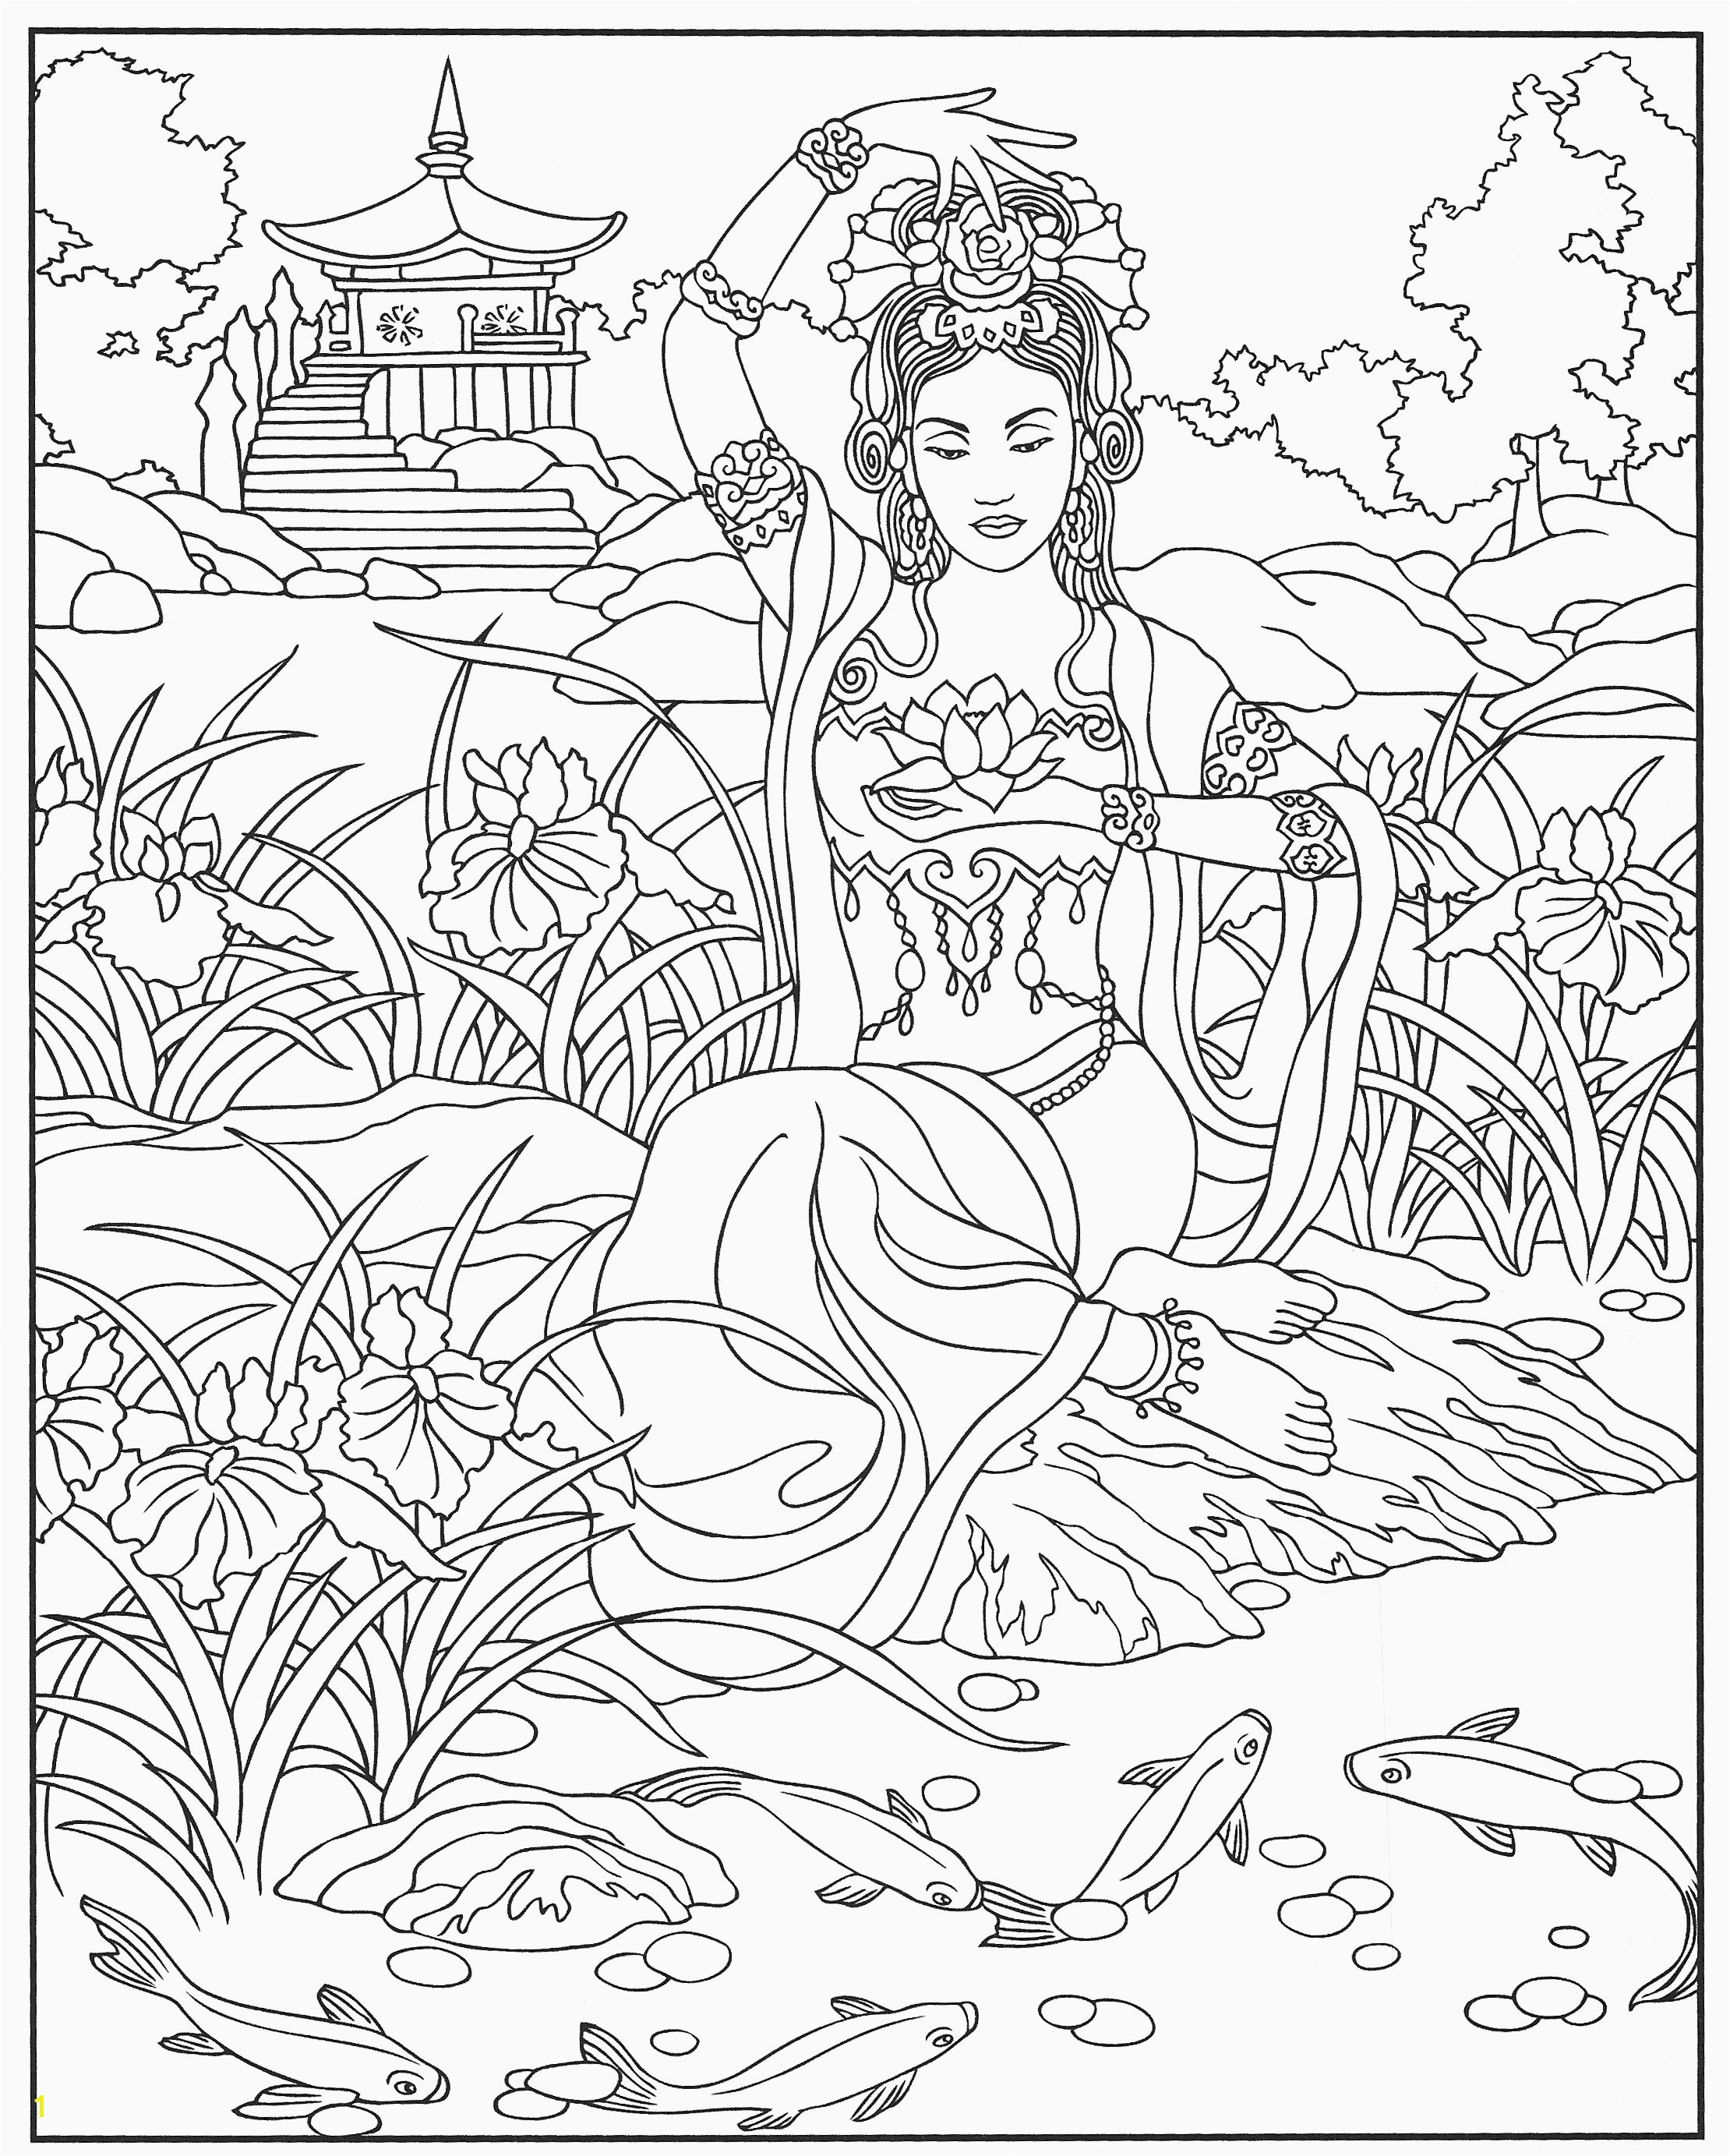 Coloring Pages for New Years 2015 Luxury Cool Coloring Page Unique Witch Coloring Pages New Crayola